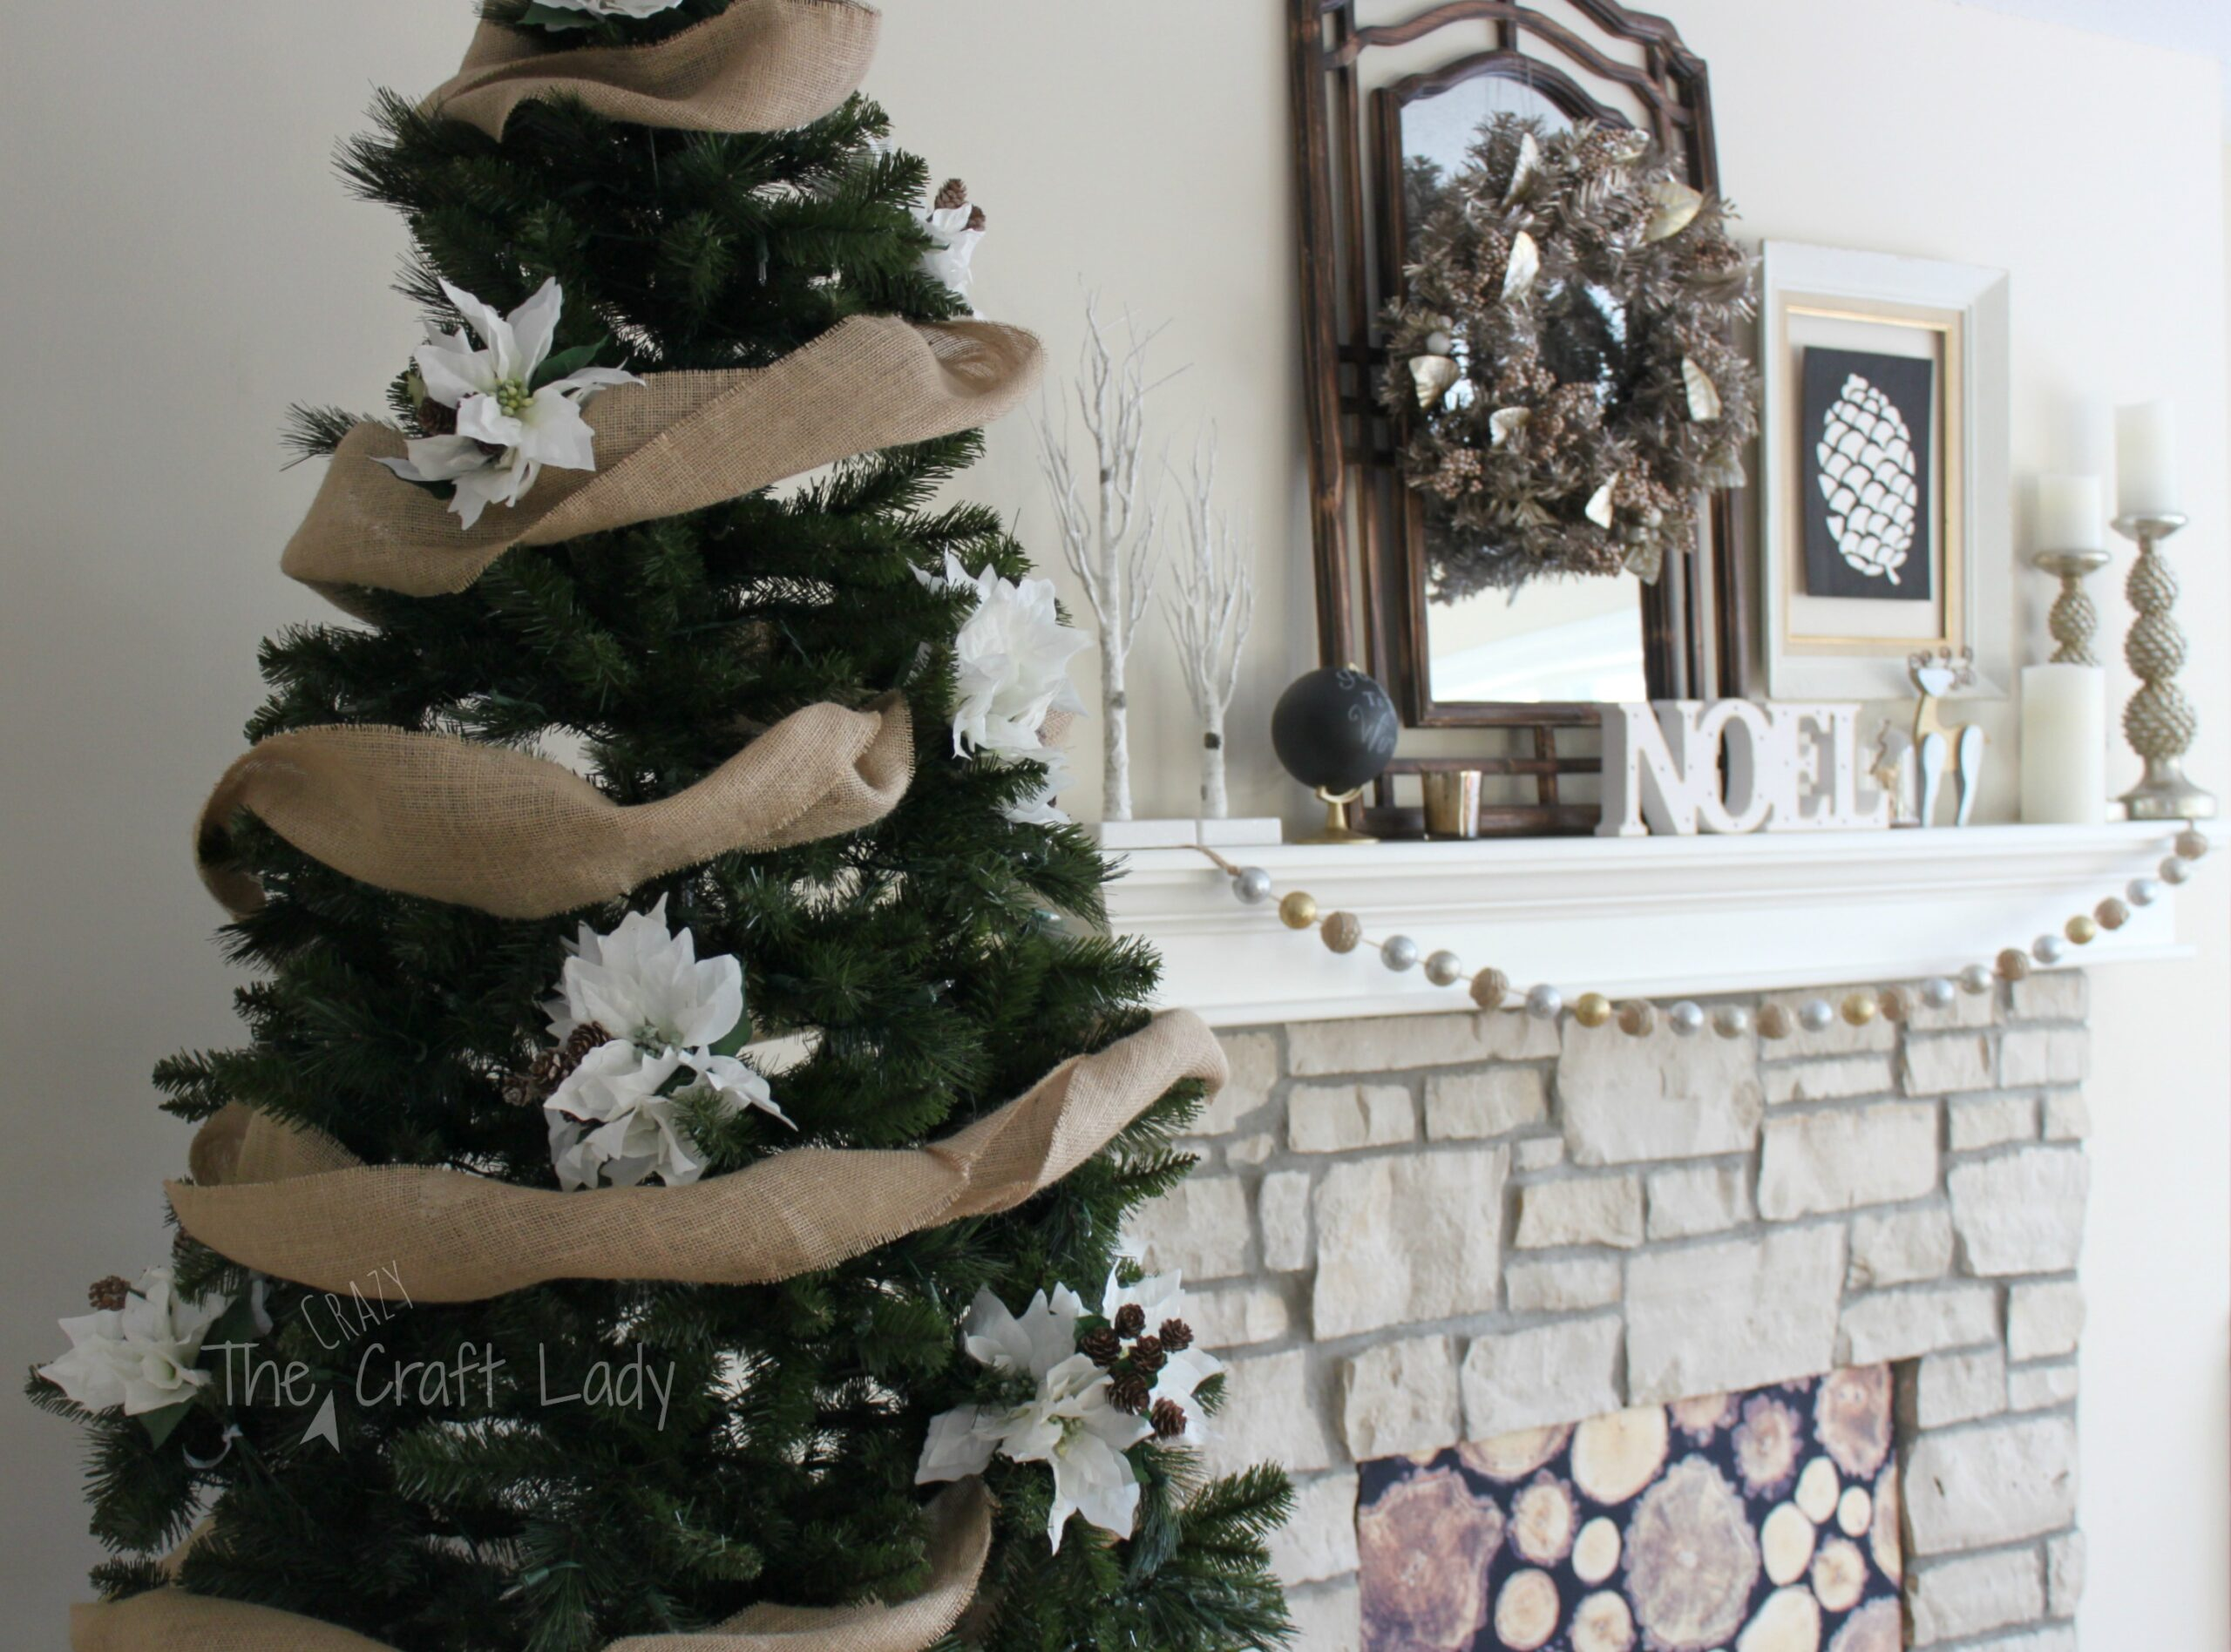 Diy christmas decorations 2014 - Easy Peasy Christmas Tree Decorating